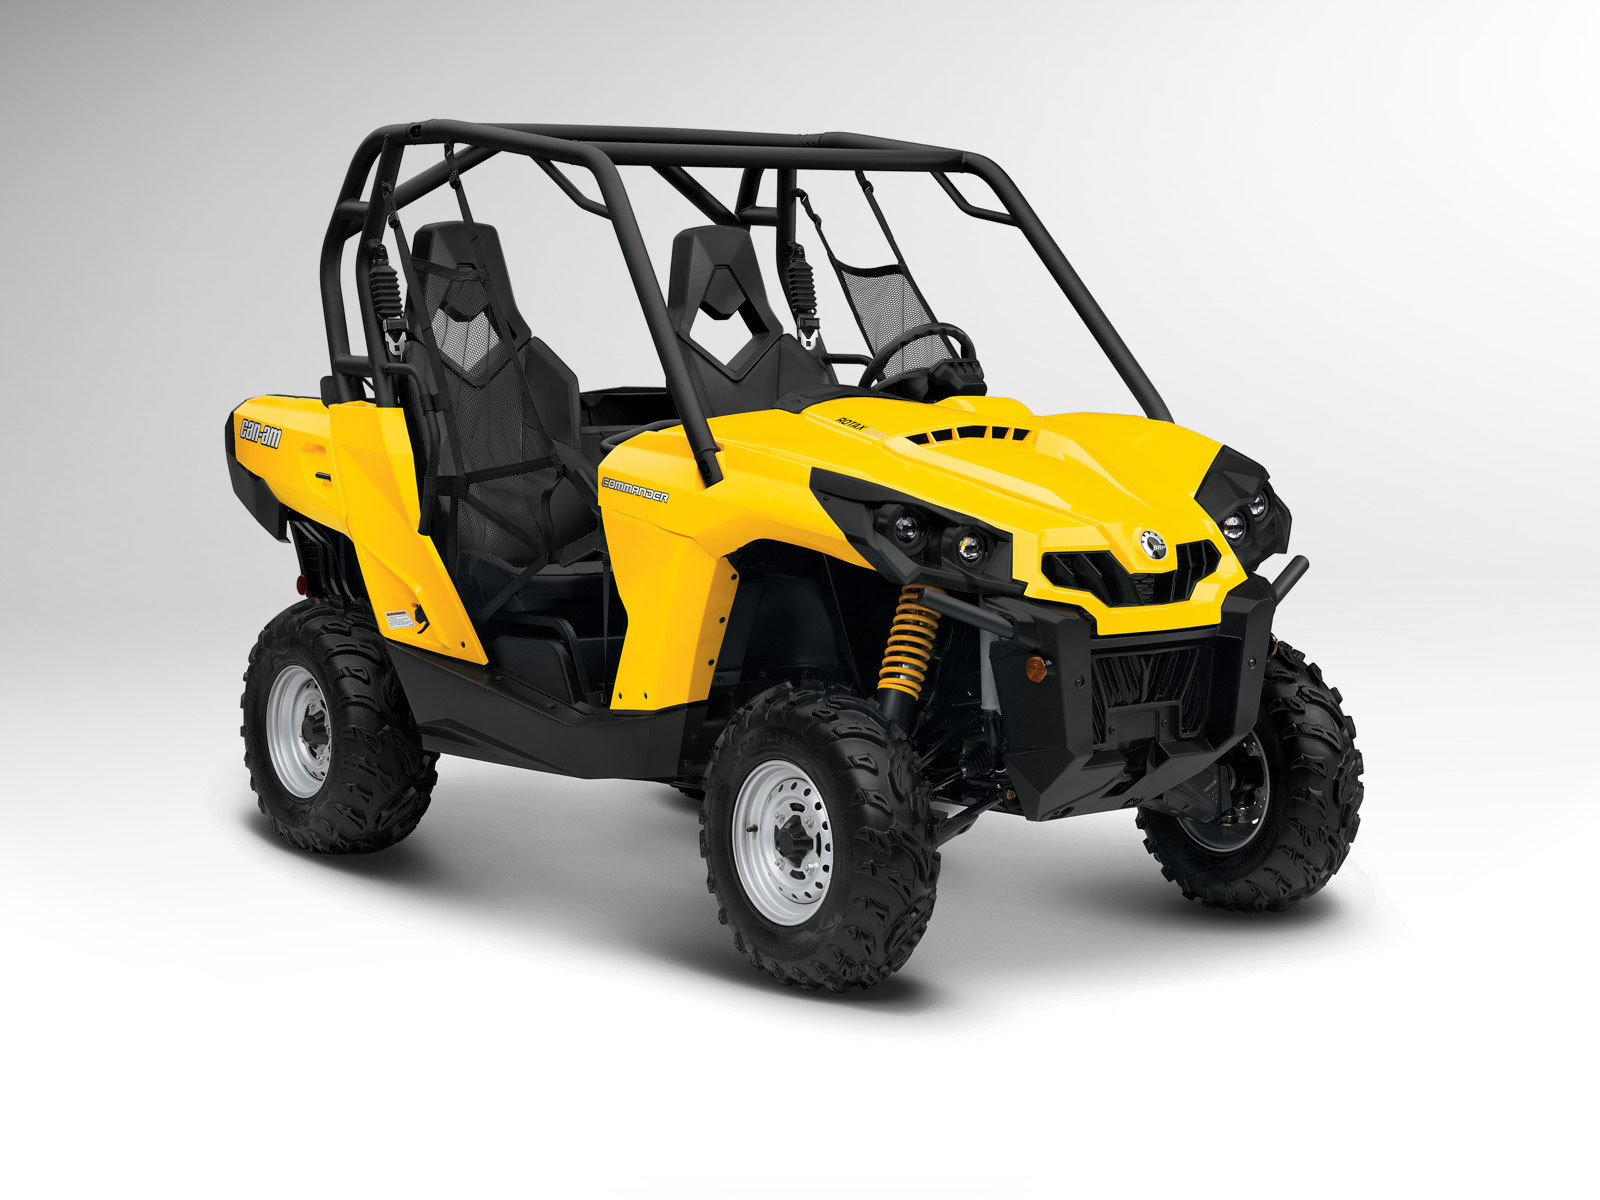 2012 Can-Am Commander 800R ATV pictures 1